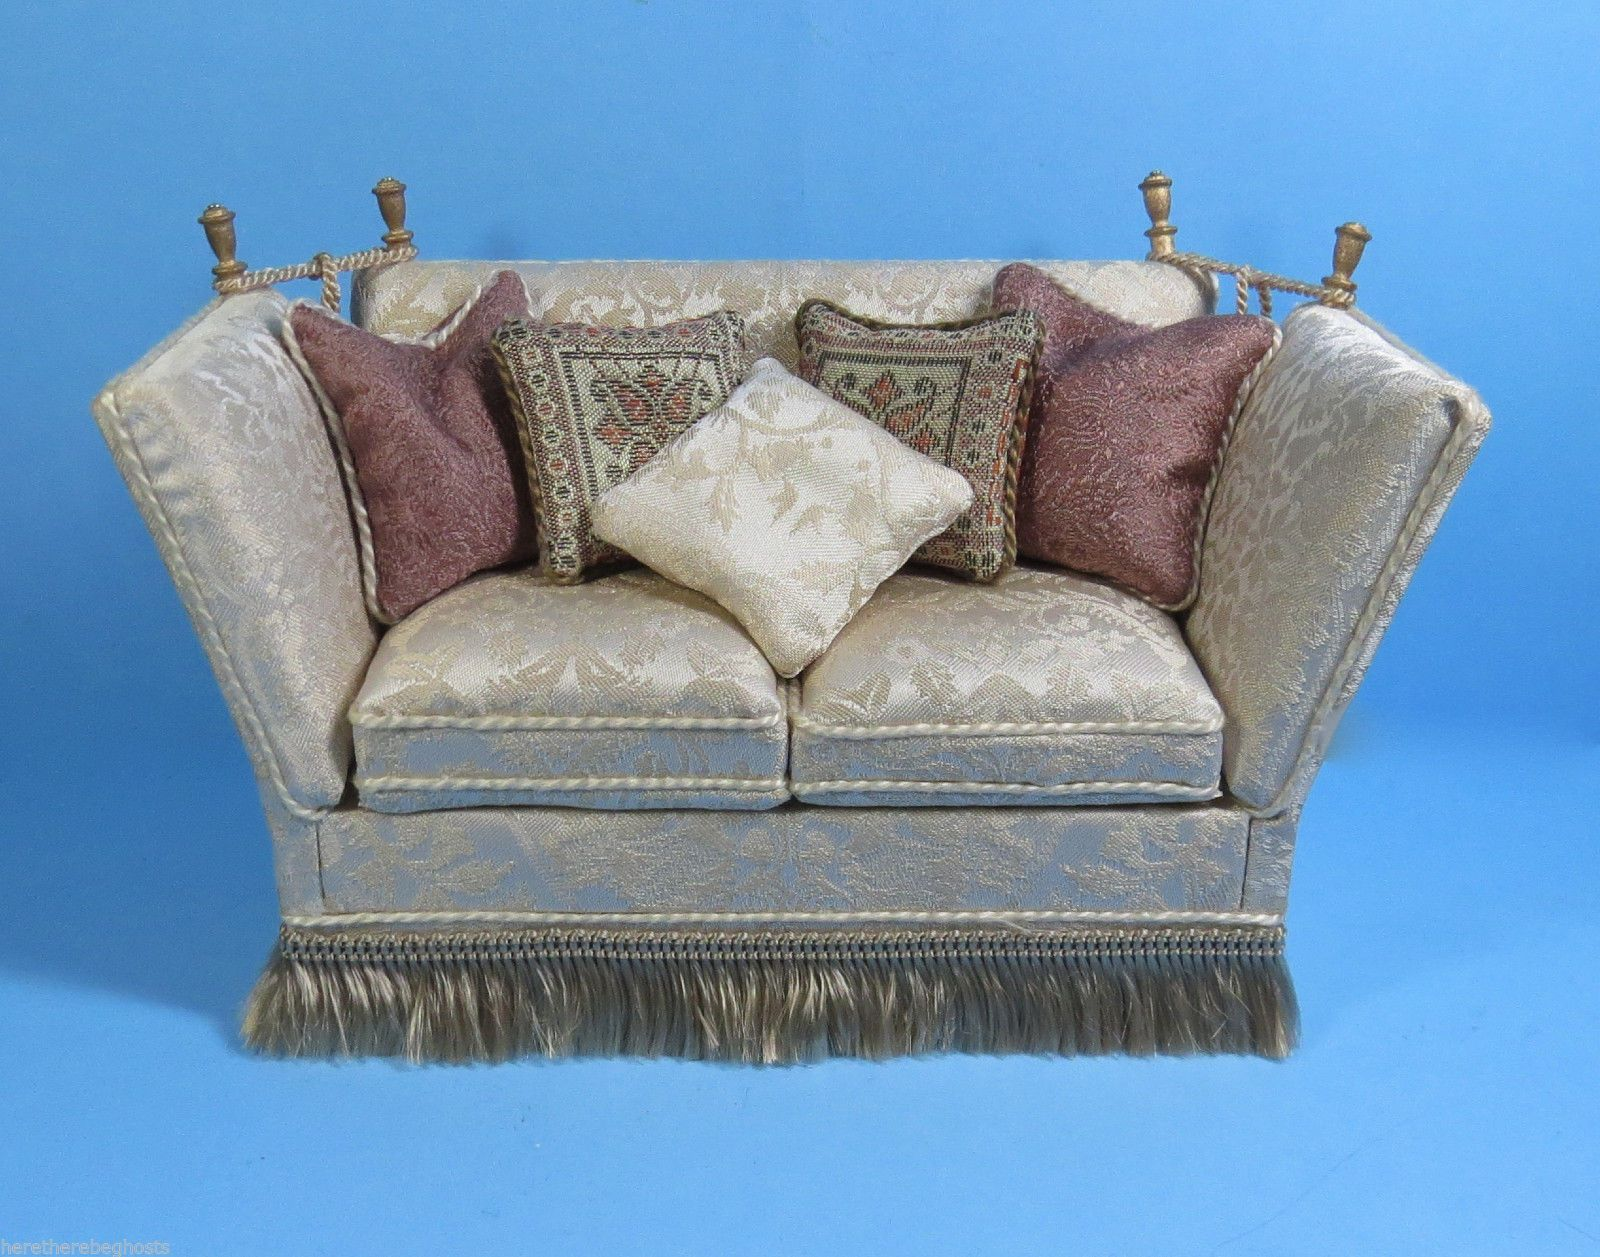 Cream Sofa Throws Arm Tray Wood Ron Hubble Knowles Upholstered In Damask With